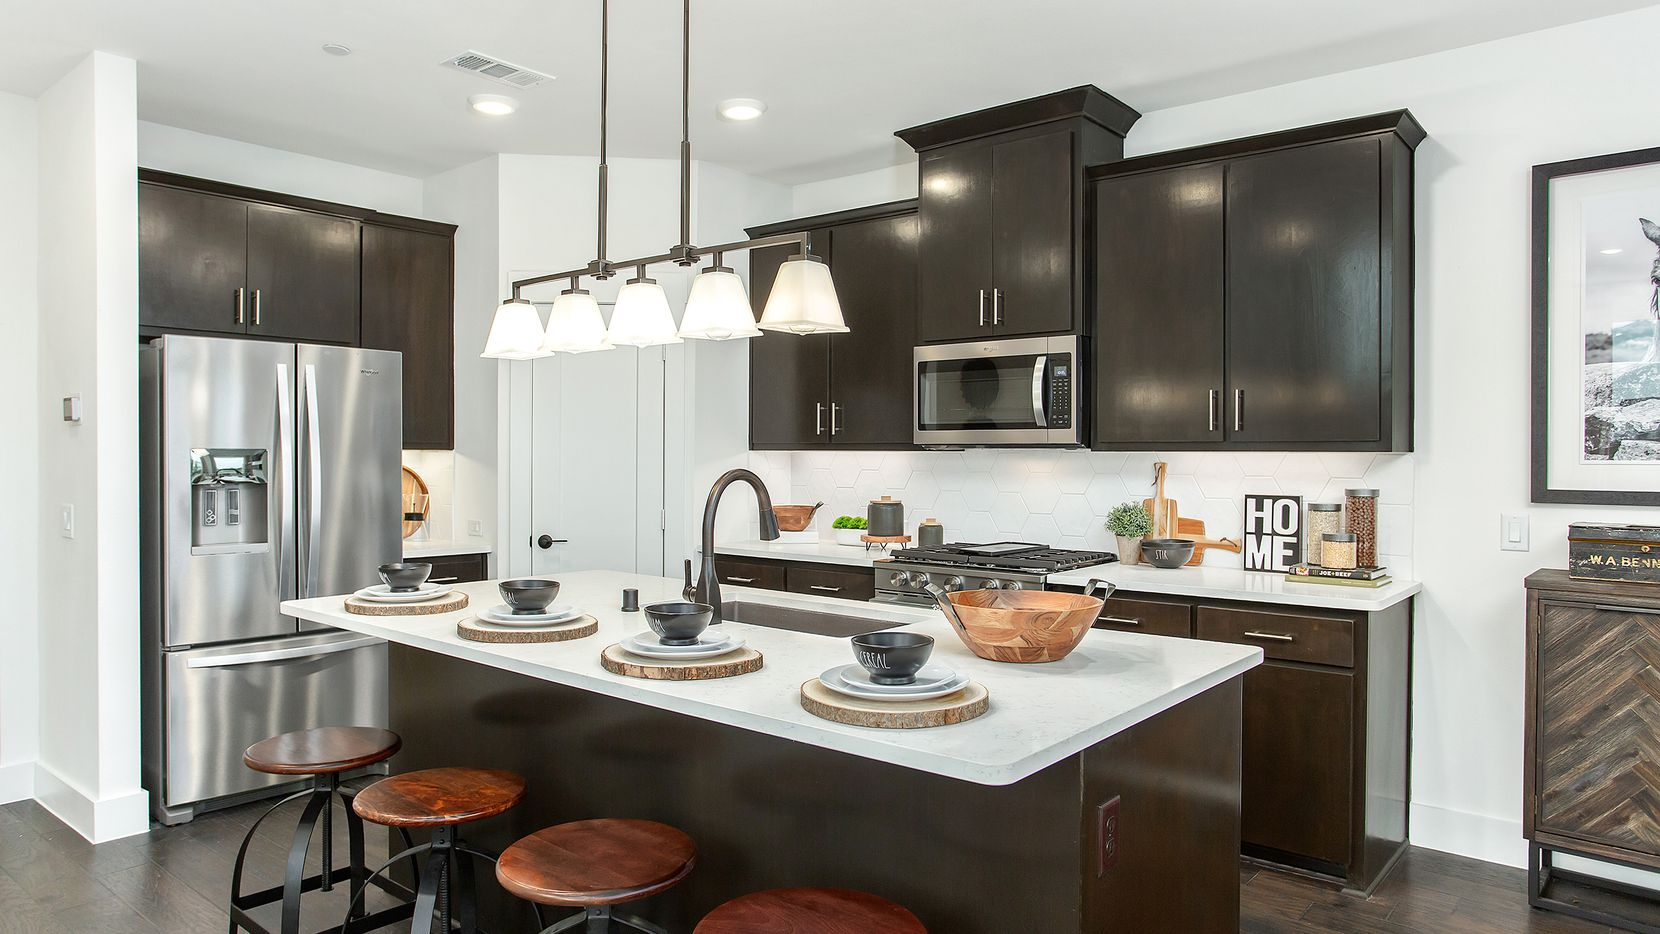 Two- and three-bedroom luxury townhomes will be ready for move-in soon at Woodbridge Townhomes, a new Wylie community by Grenadier Homes.